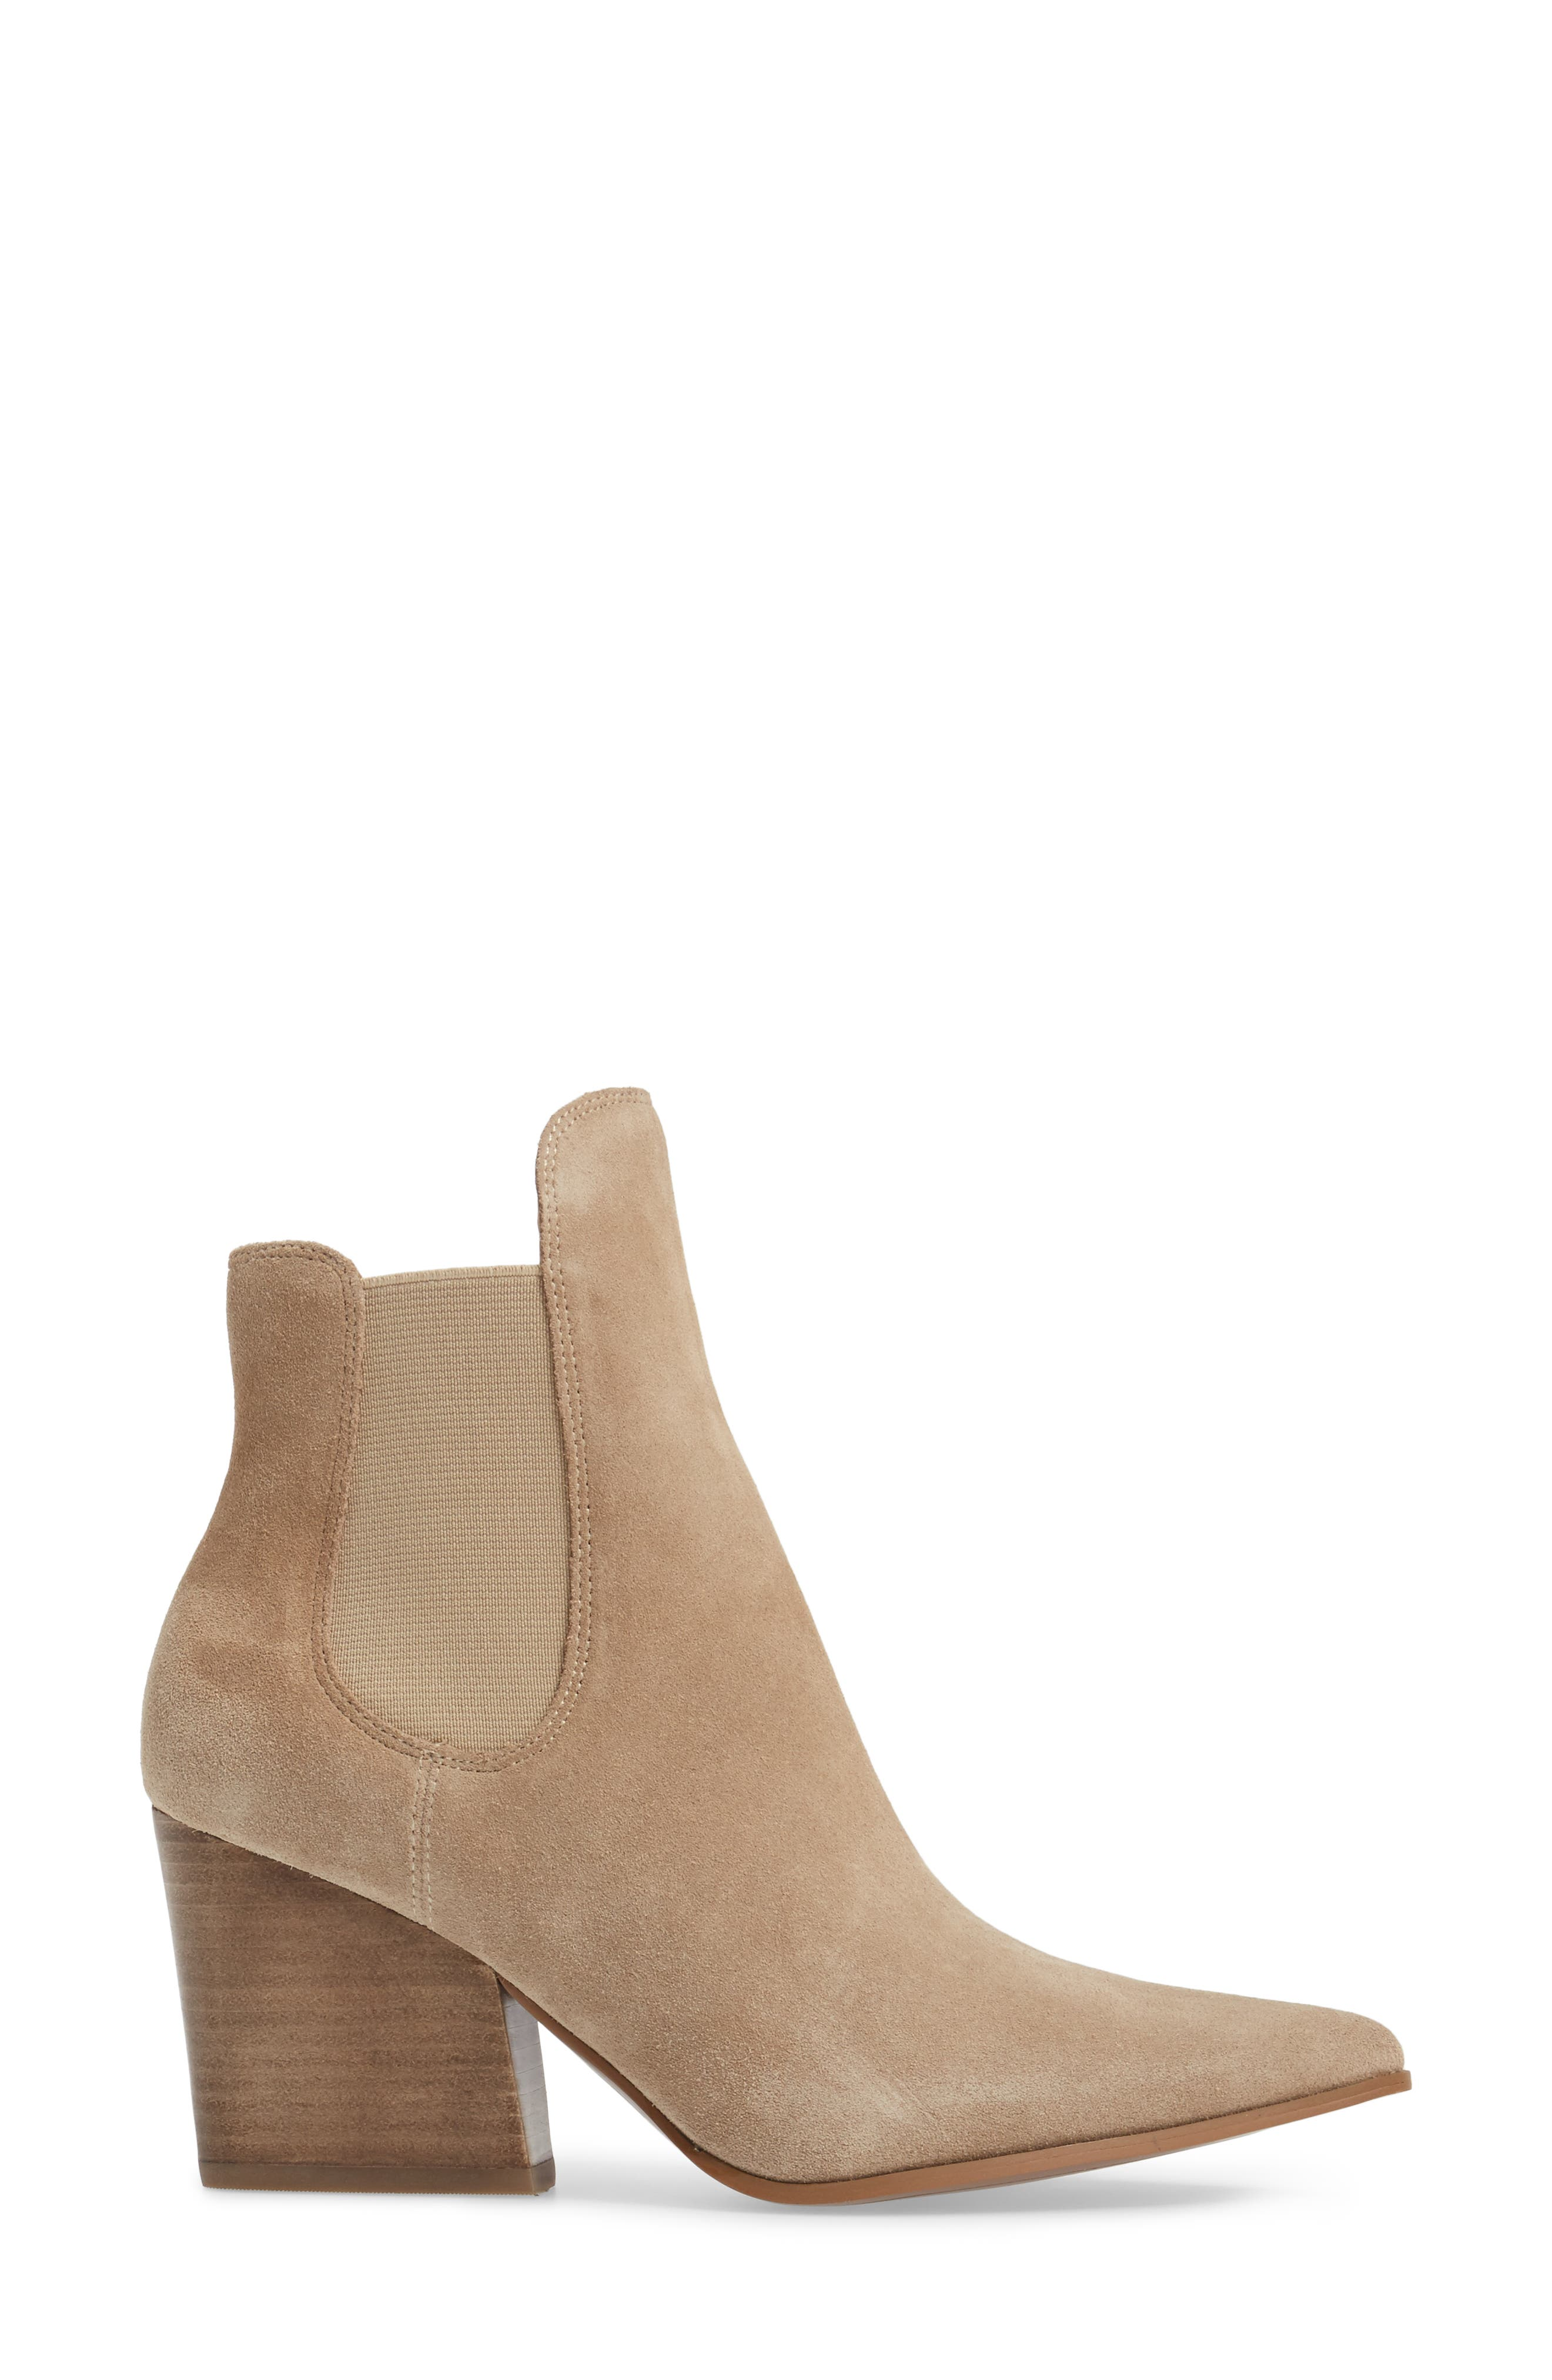 'Finley' Chelsea Boot,                             Alternate thumbnail 3, color,                             271